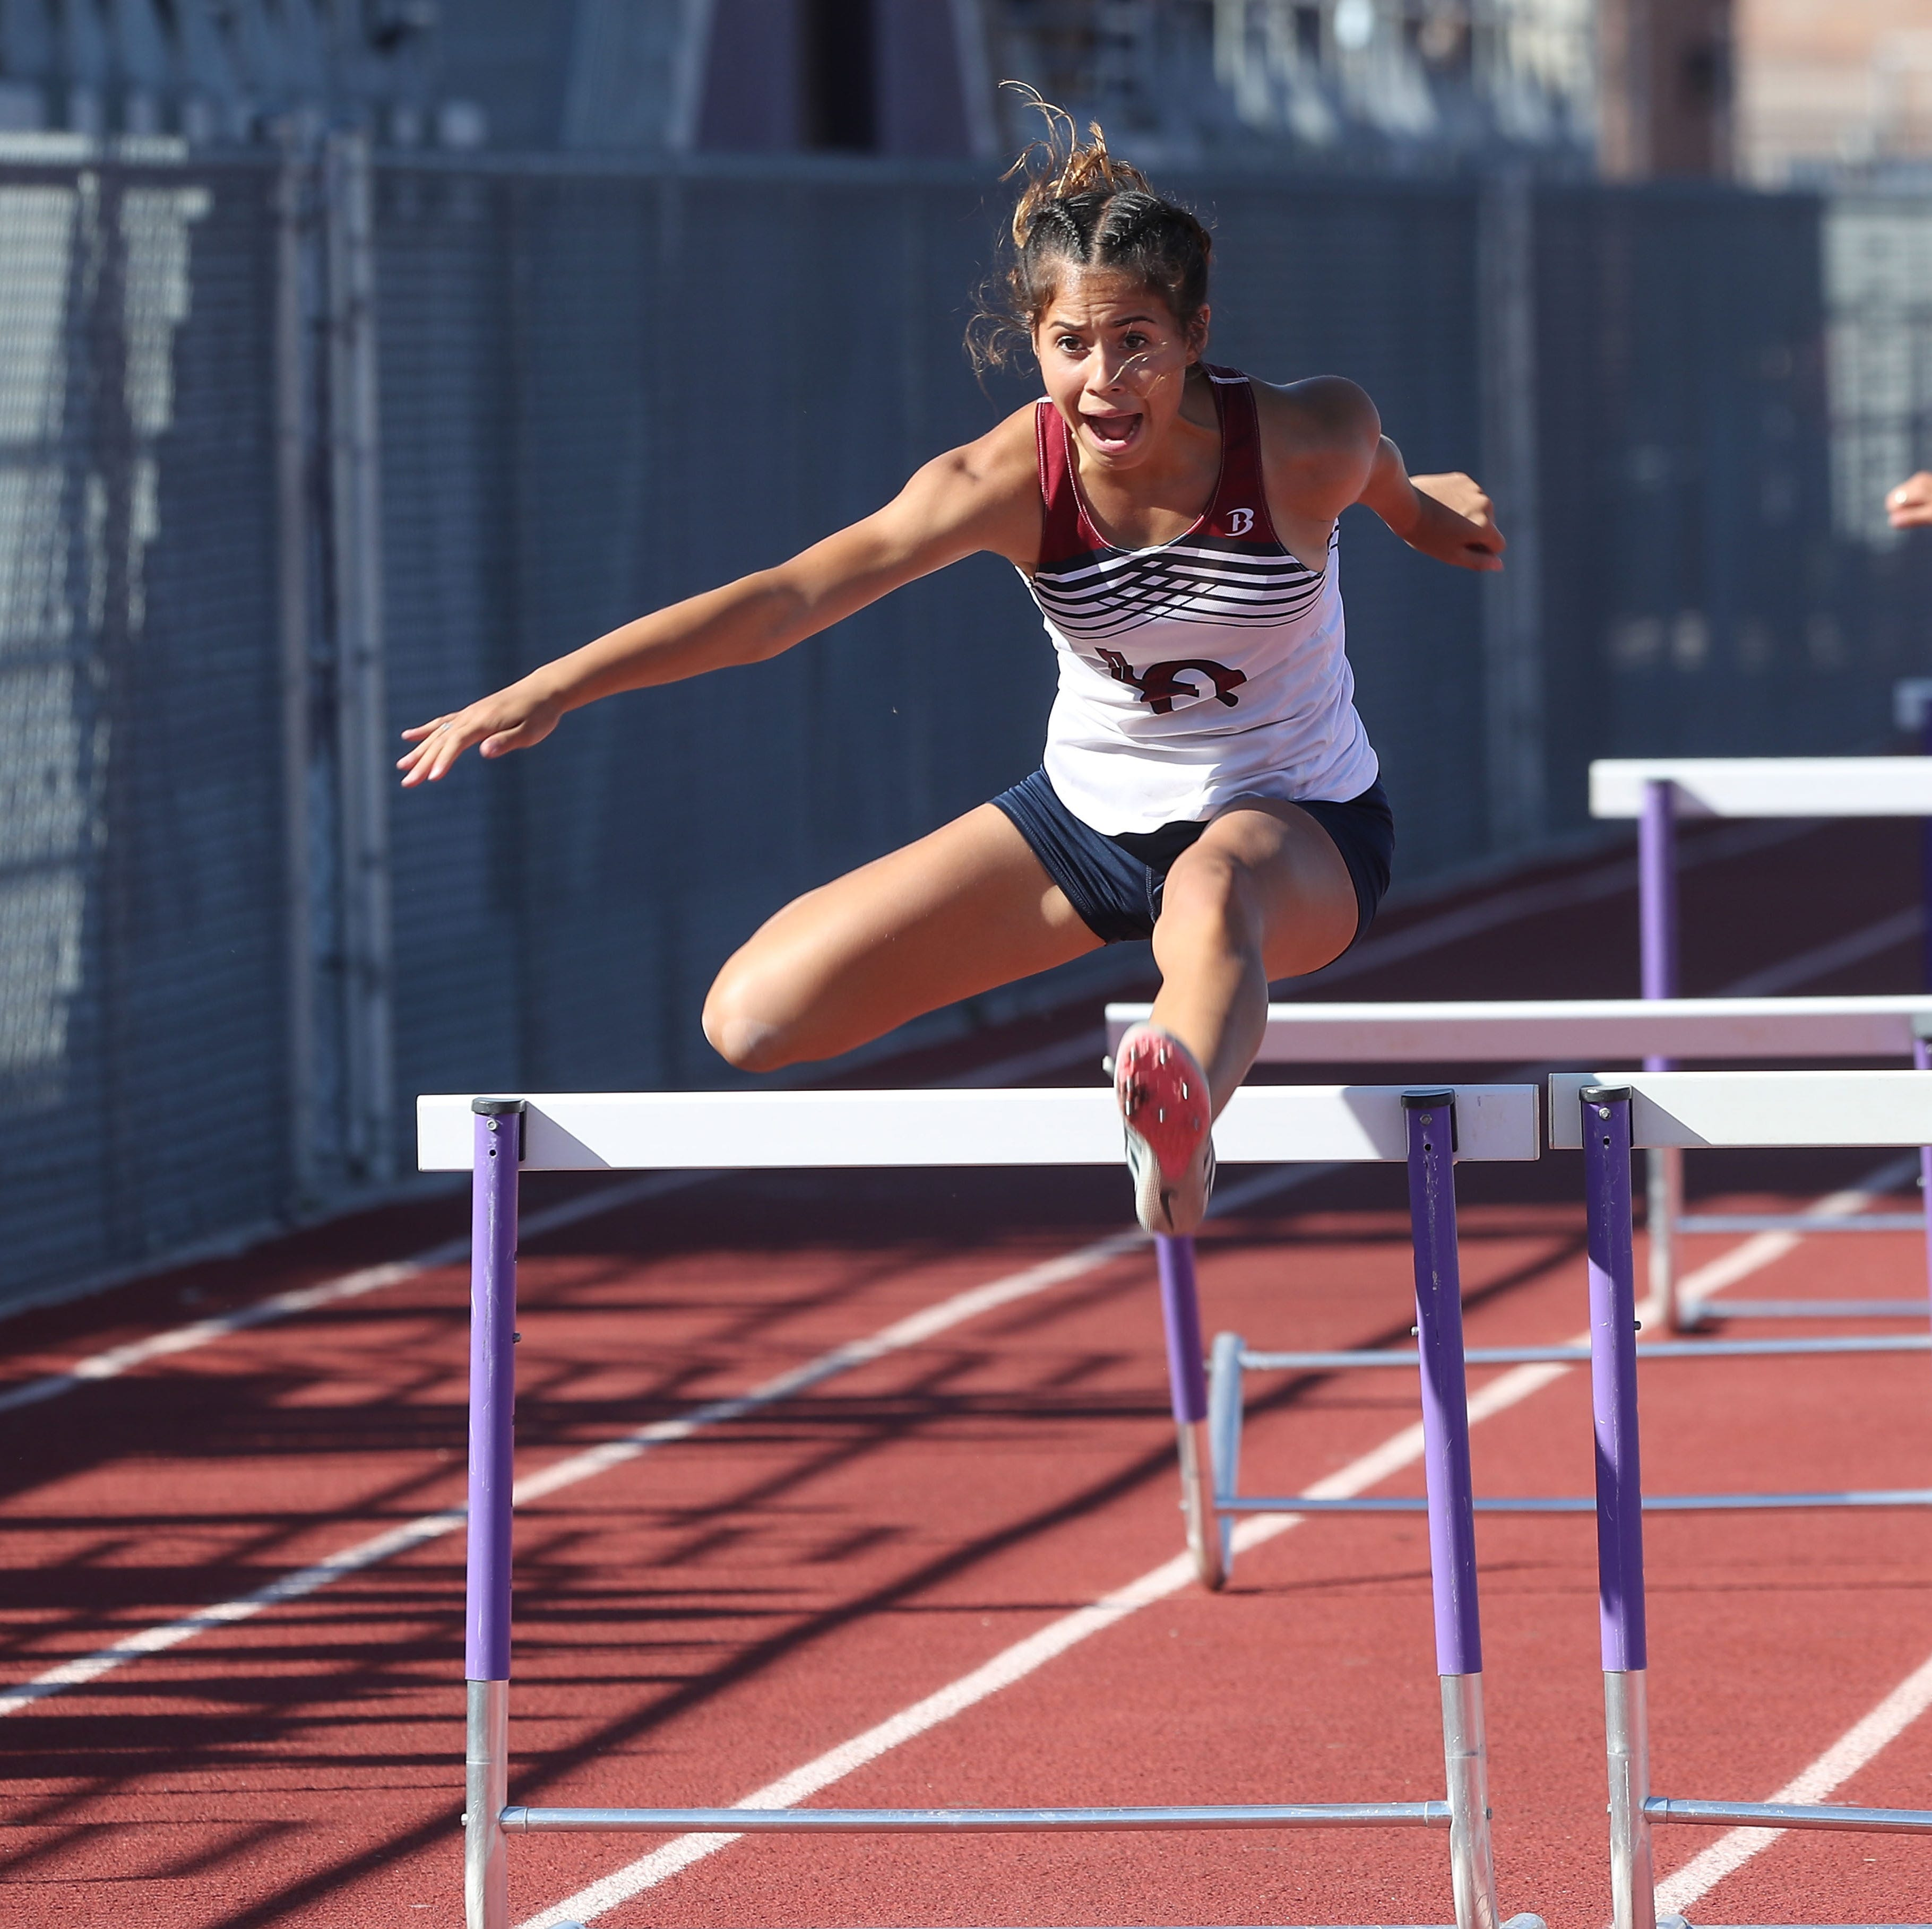 La Quinta girls' track, DVL athletes lauded for 'student' side of being a student-athlete